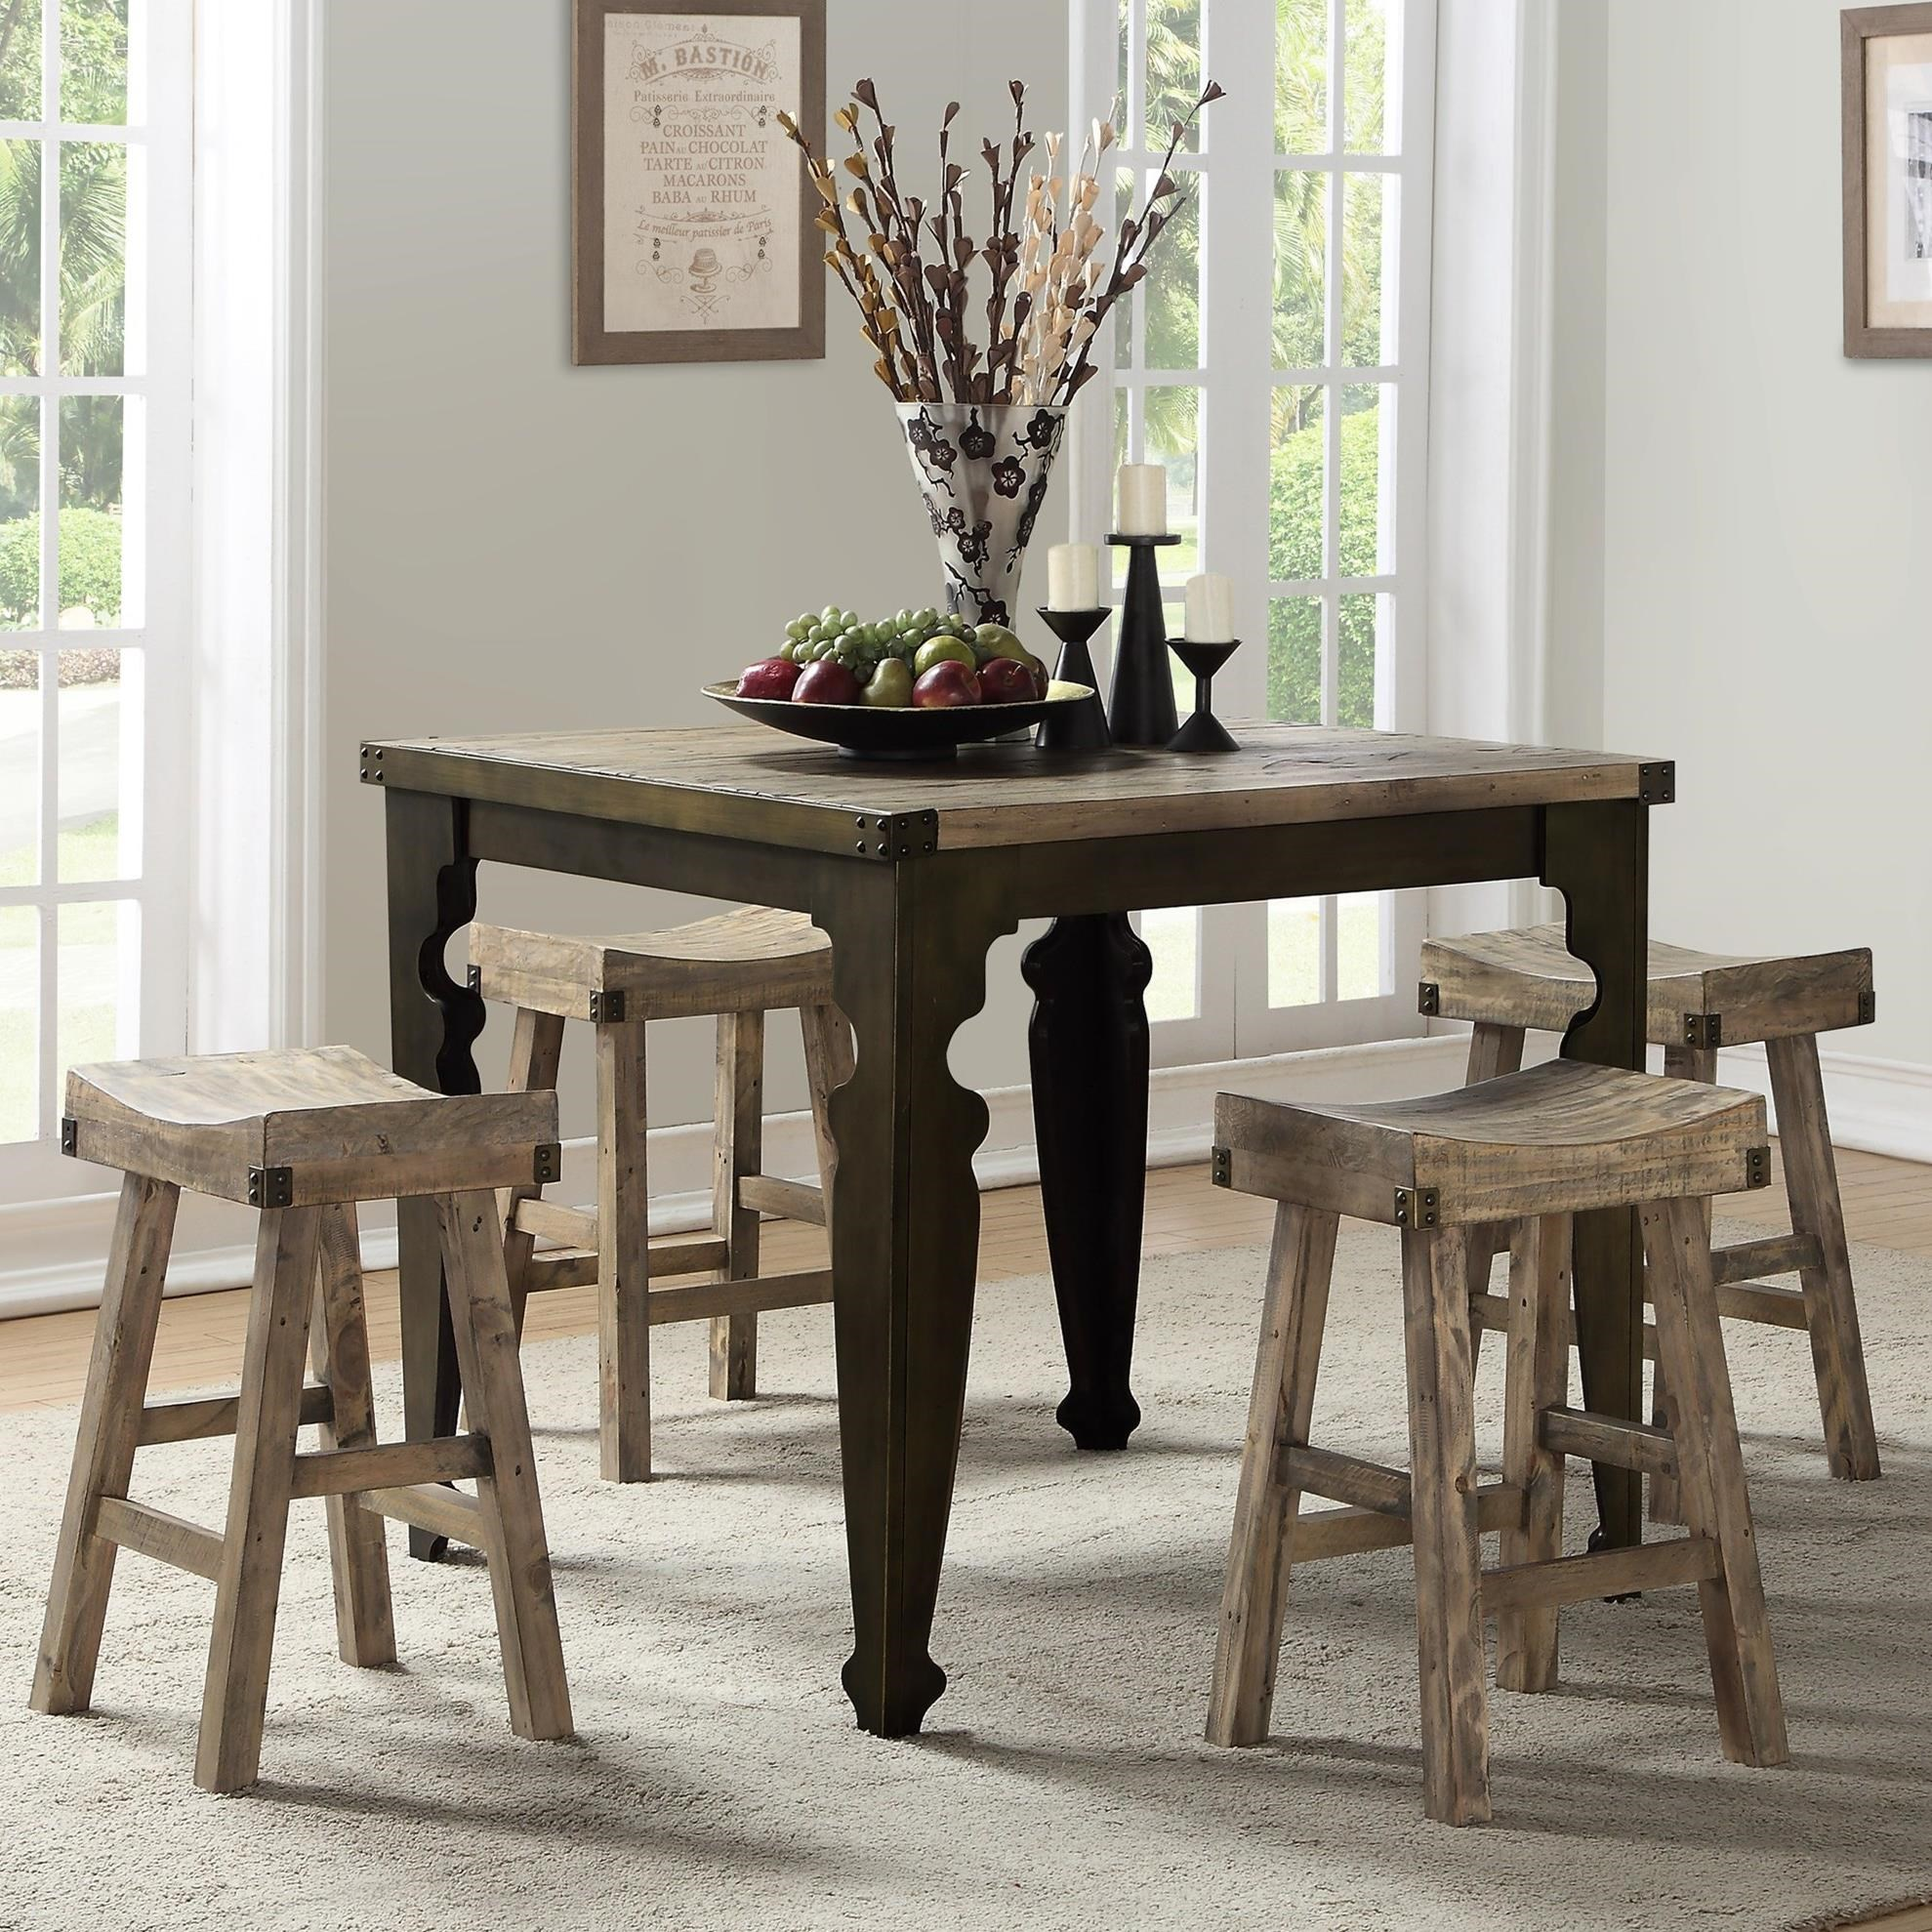 Valencia 5-Piece Pub Table and Chair Set by Emerald at Suburban Furniture